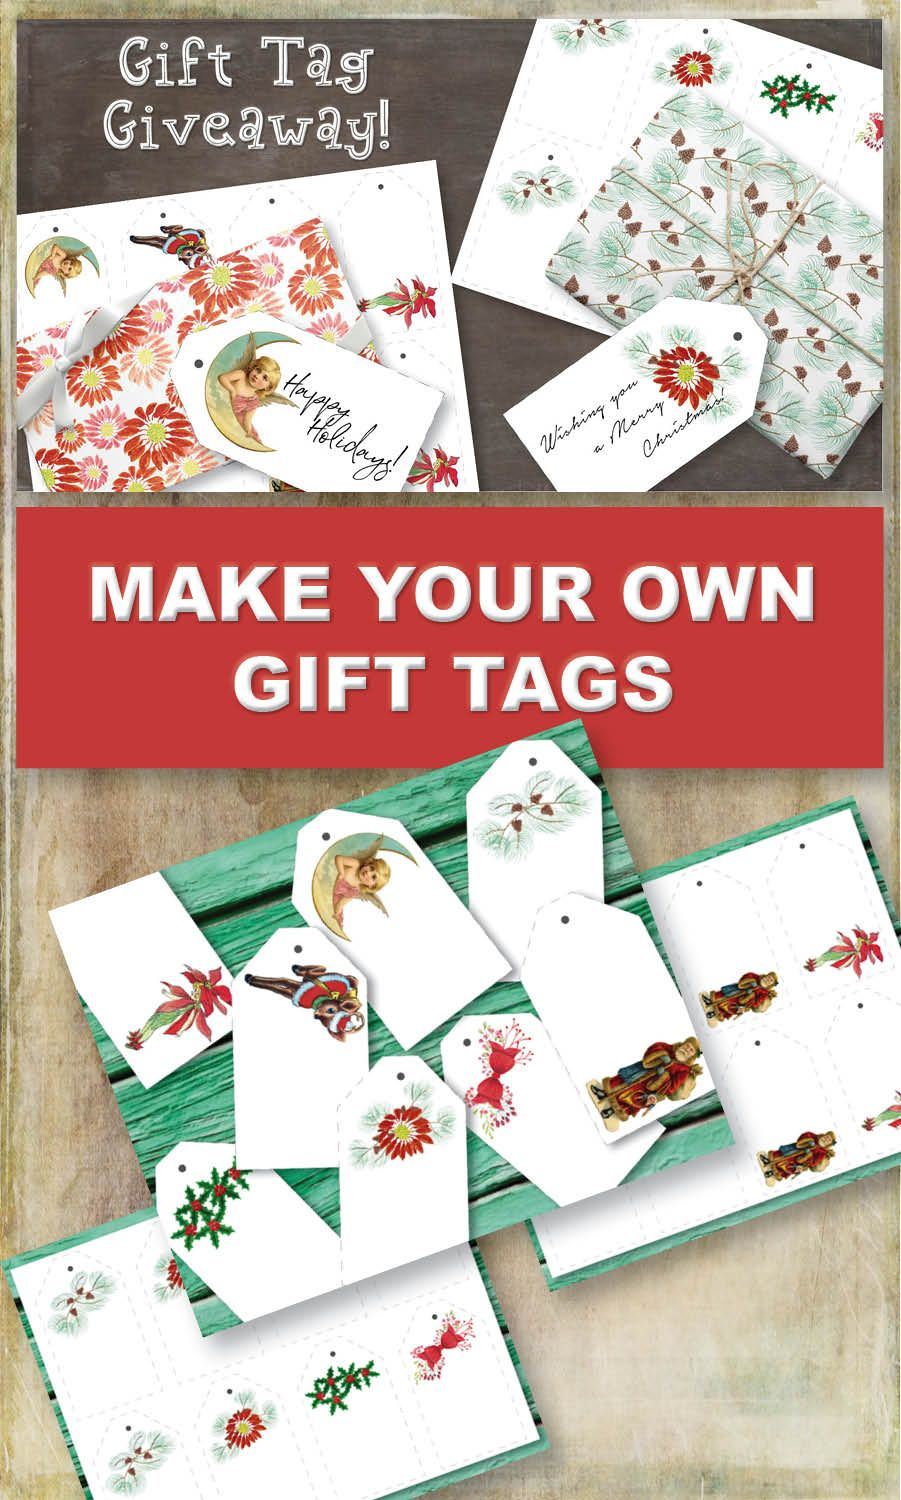 How To Make Your Own Gift Tags Little Gifts